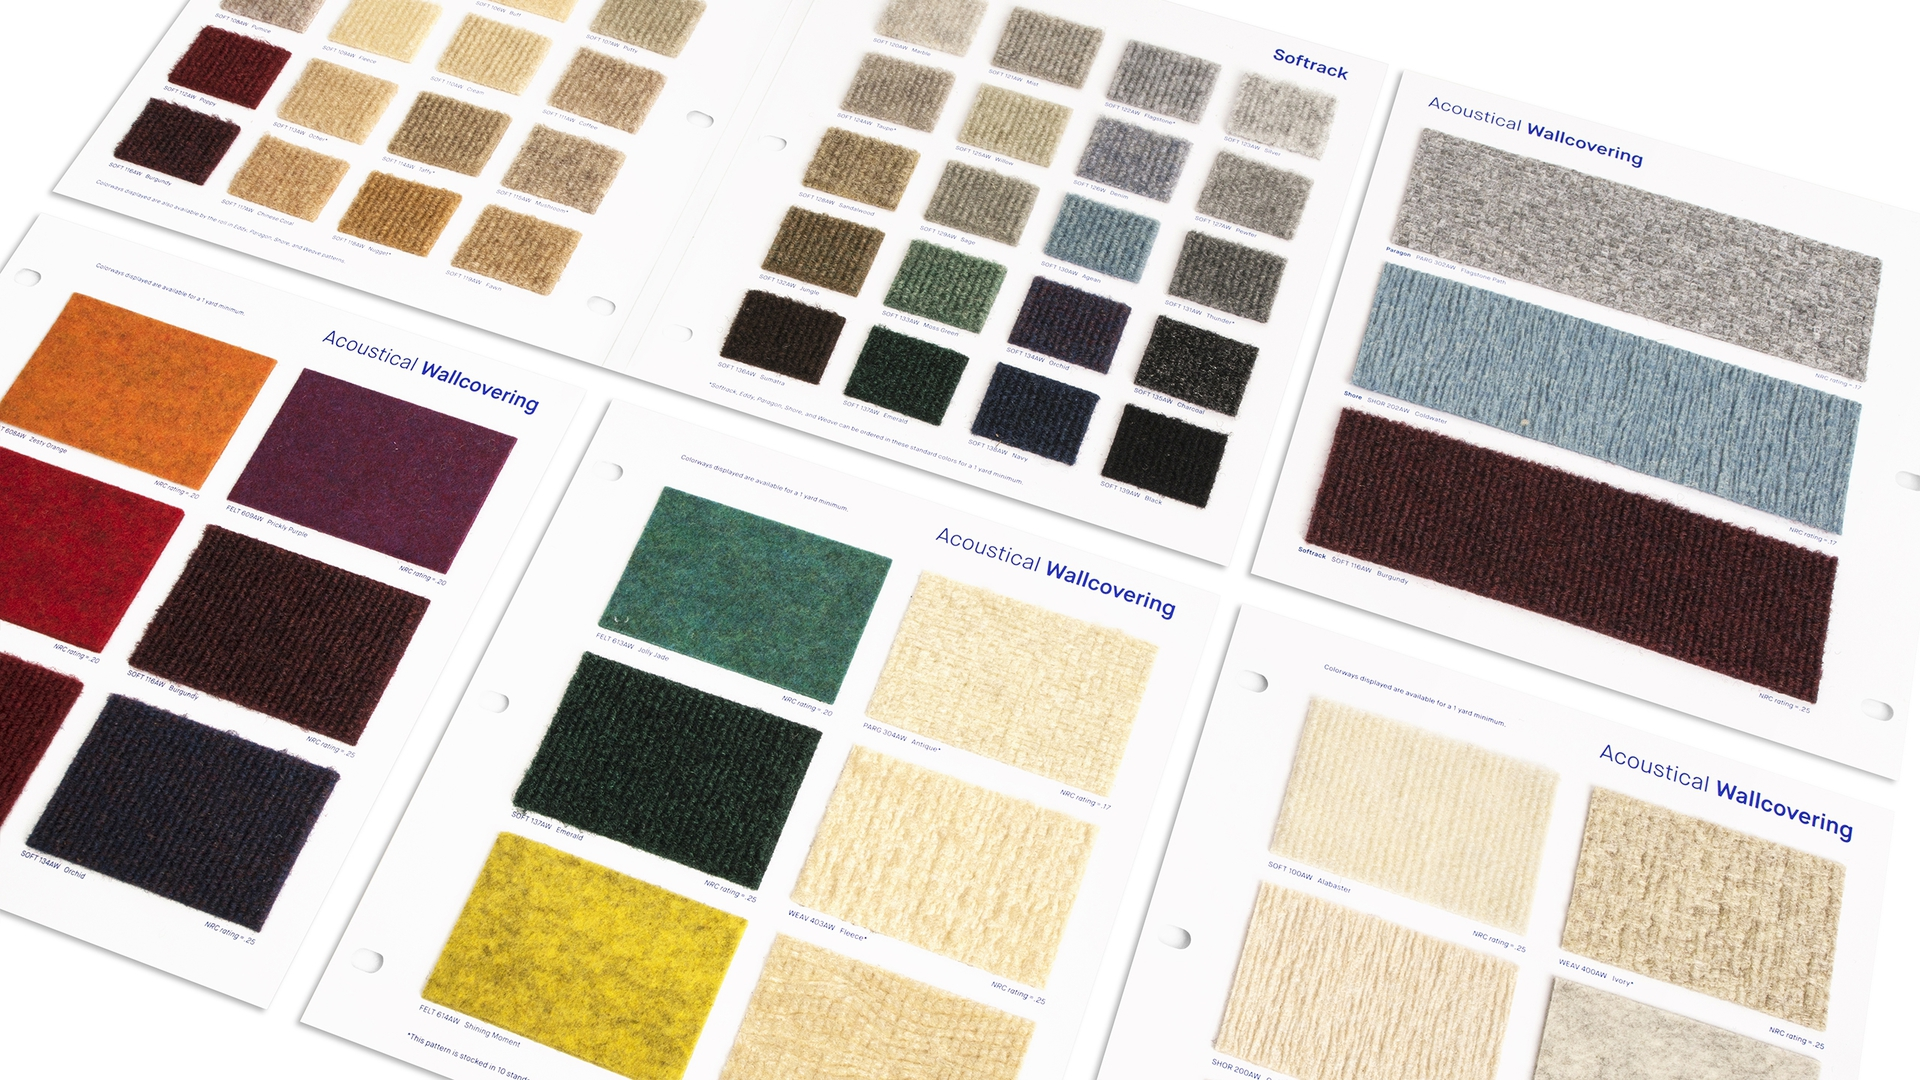 Wolf-Gordon's wide range of swatch books are one of their most important sales tools.